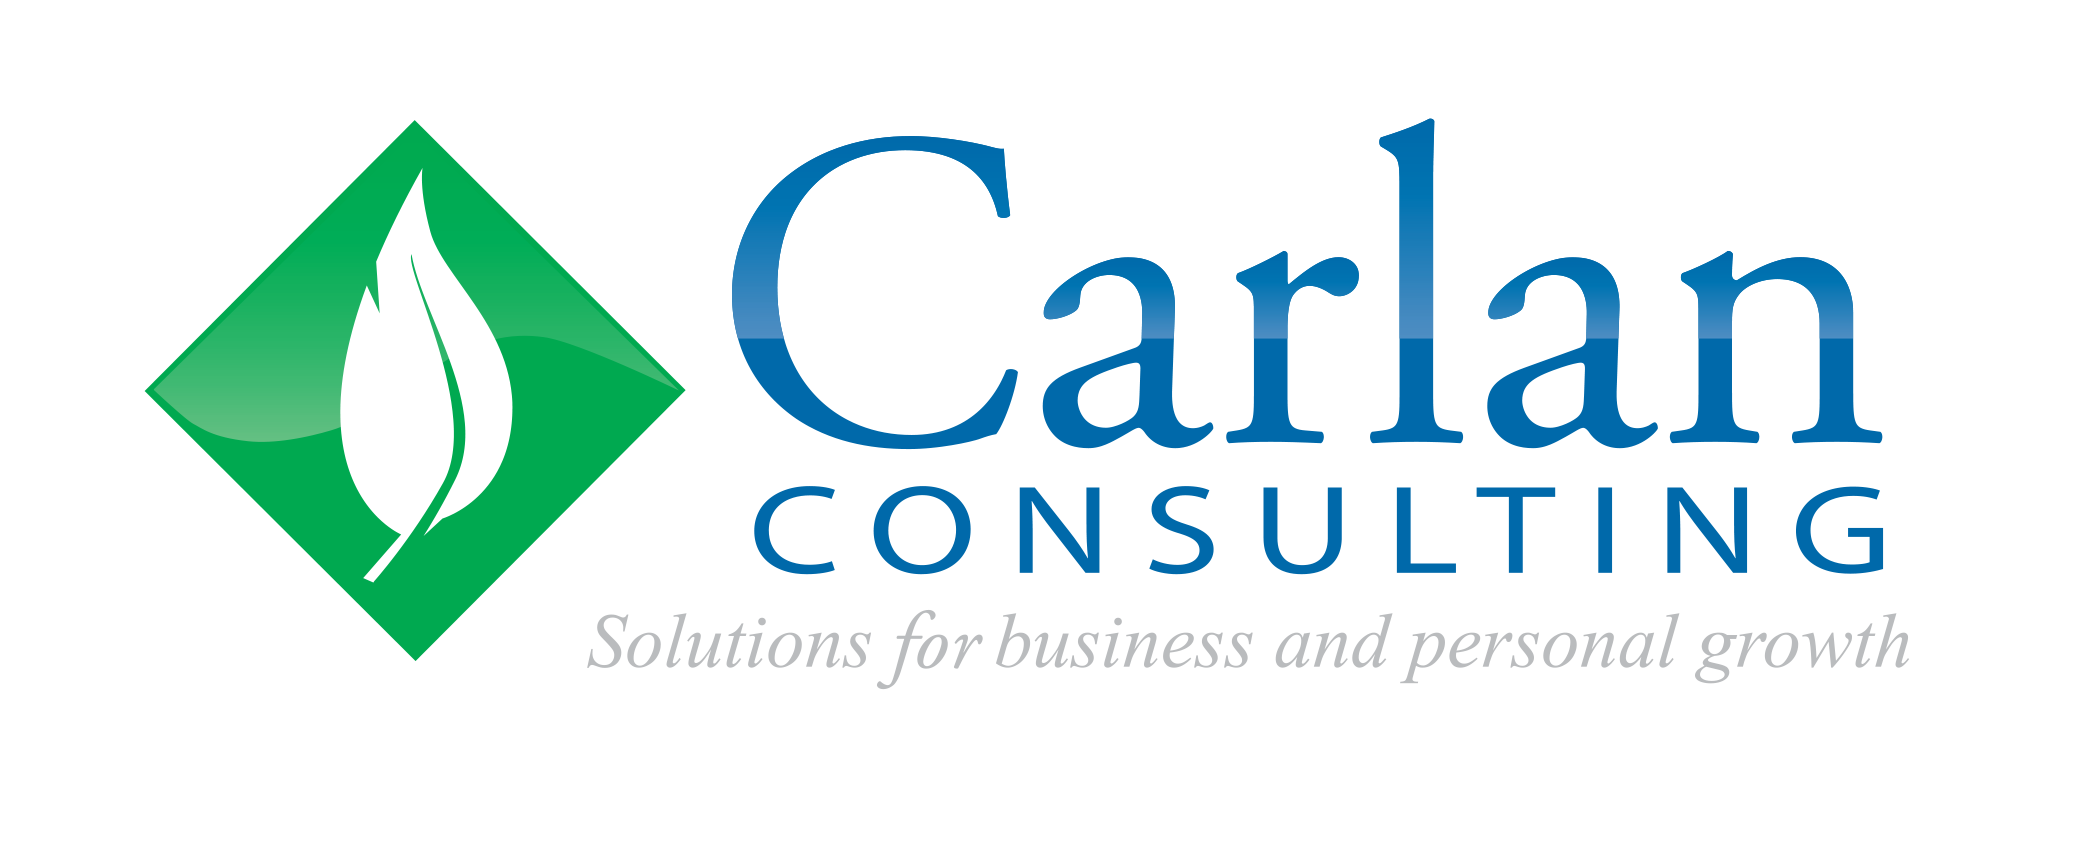 Carlan Consulting